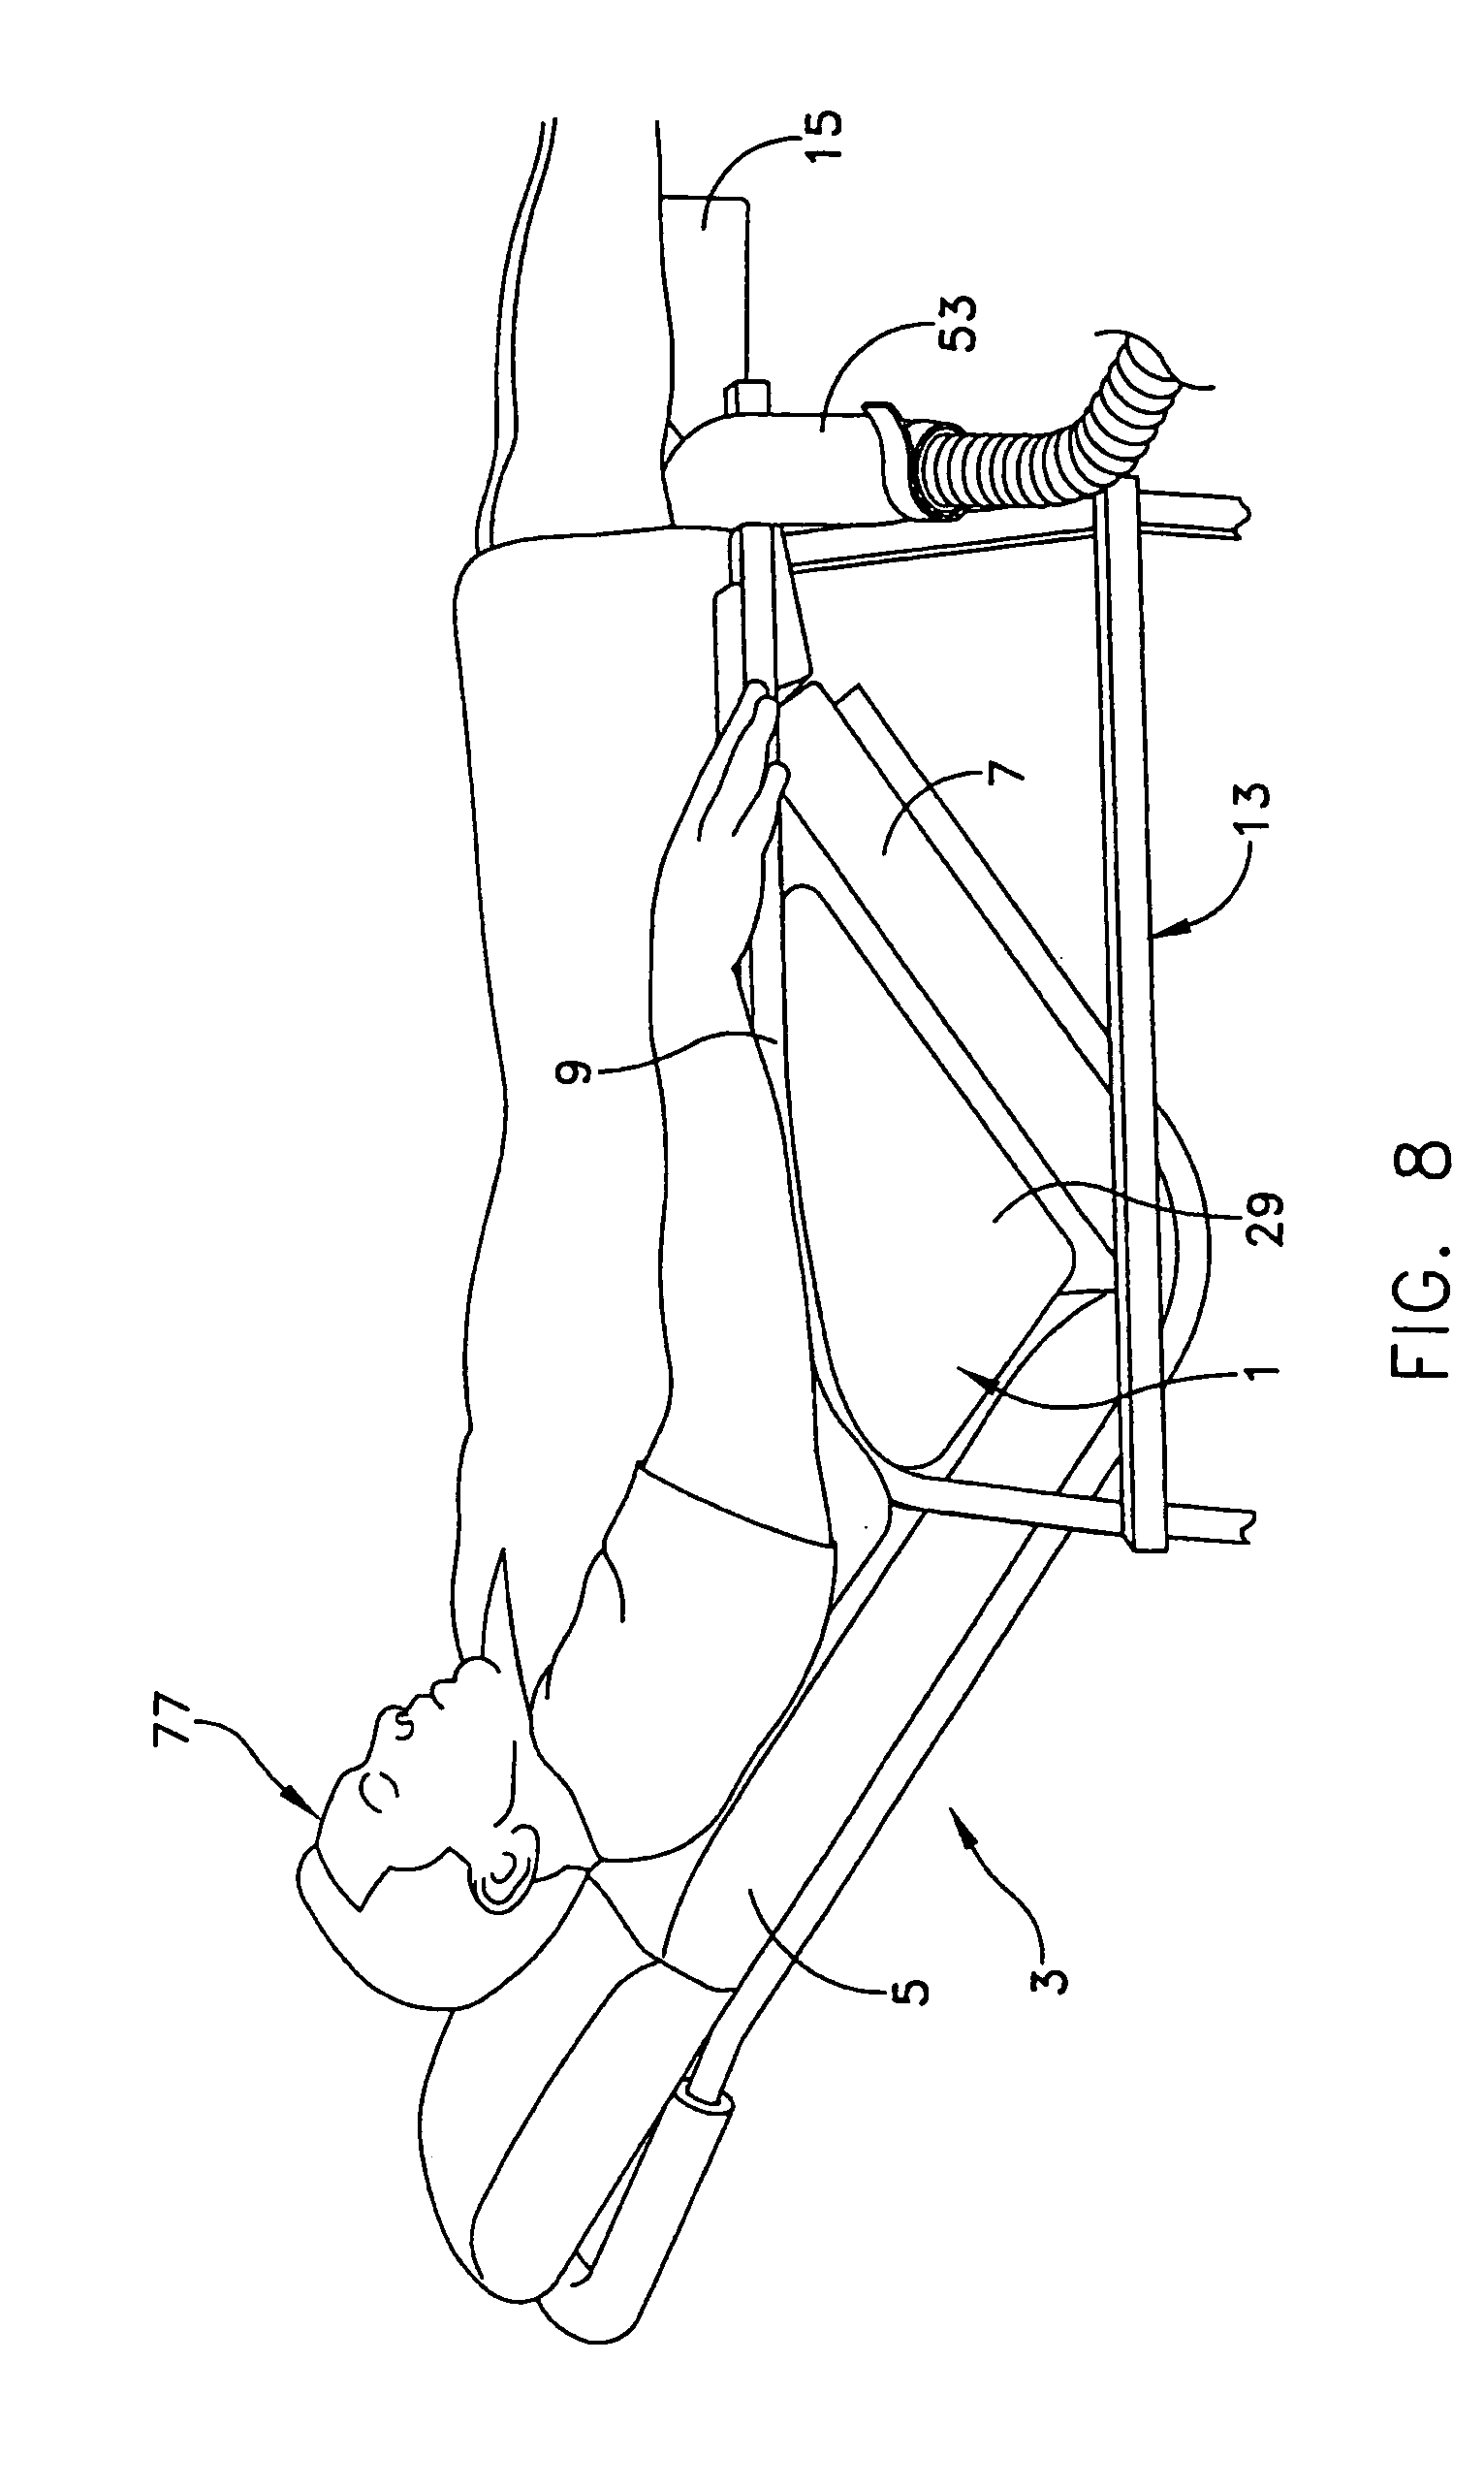 inflatable lifting chair sex toy patent us7168115 cushion and method for